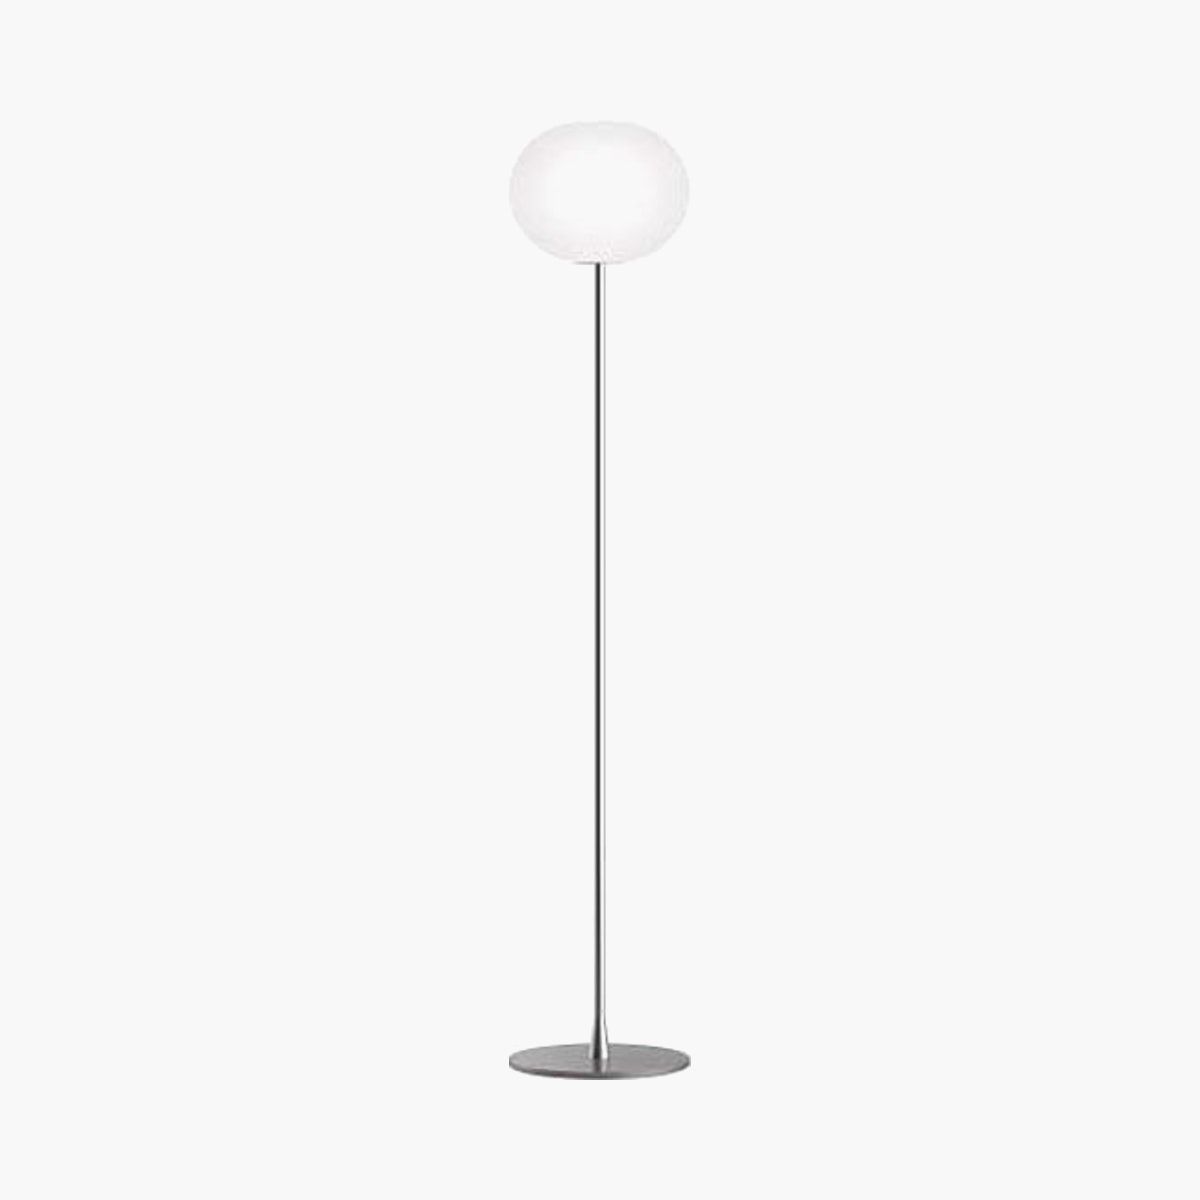 Glo-Ball Floor Lamp